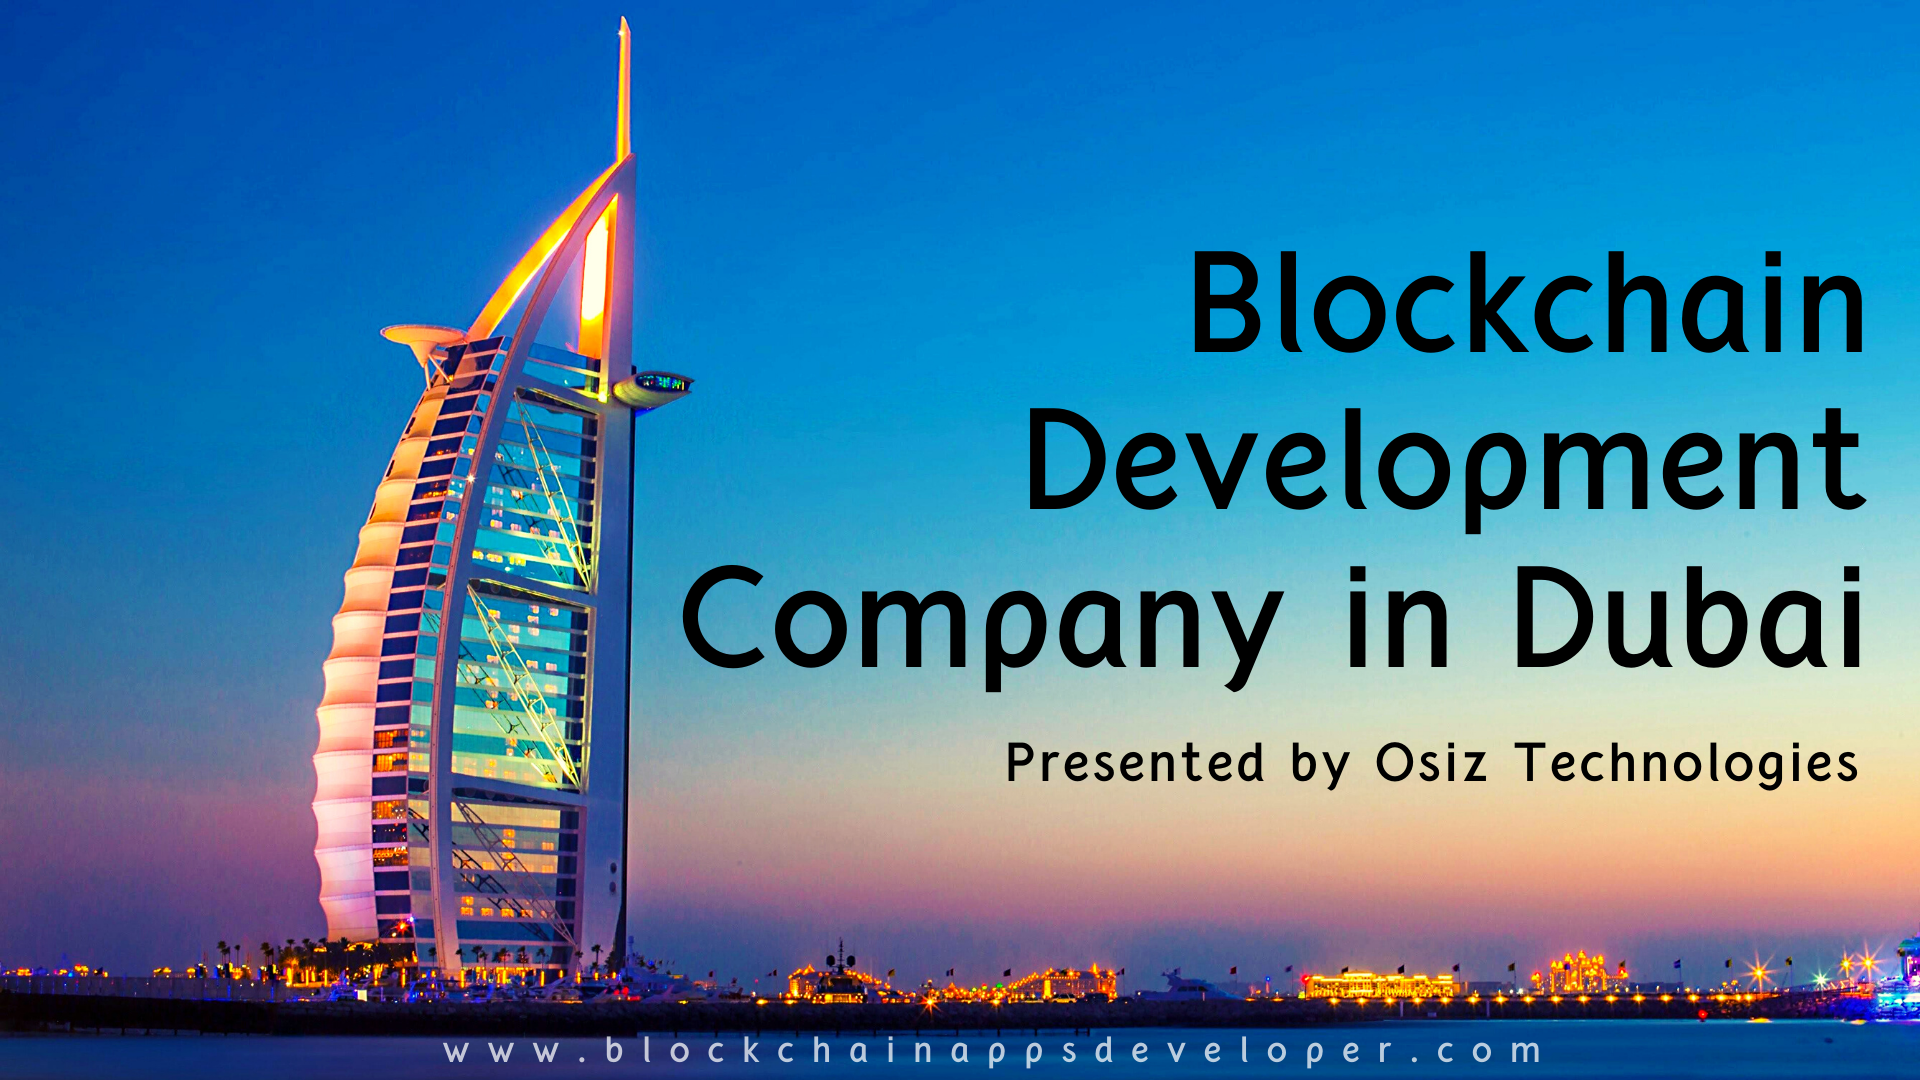 Blockchain Development Company in Dubai, UAE